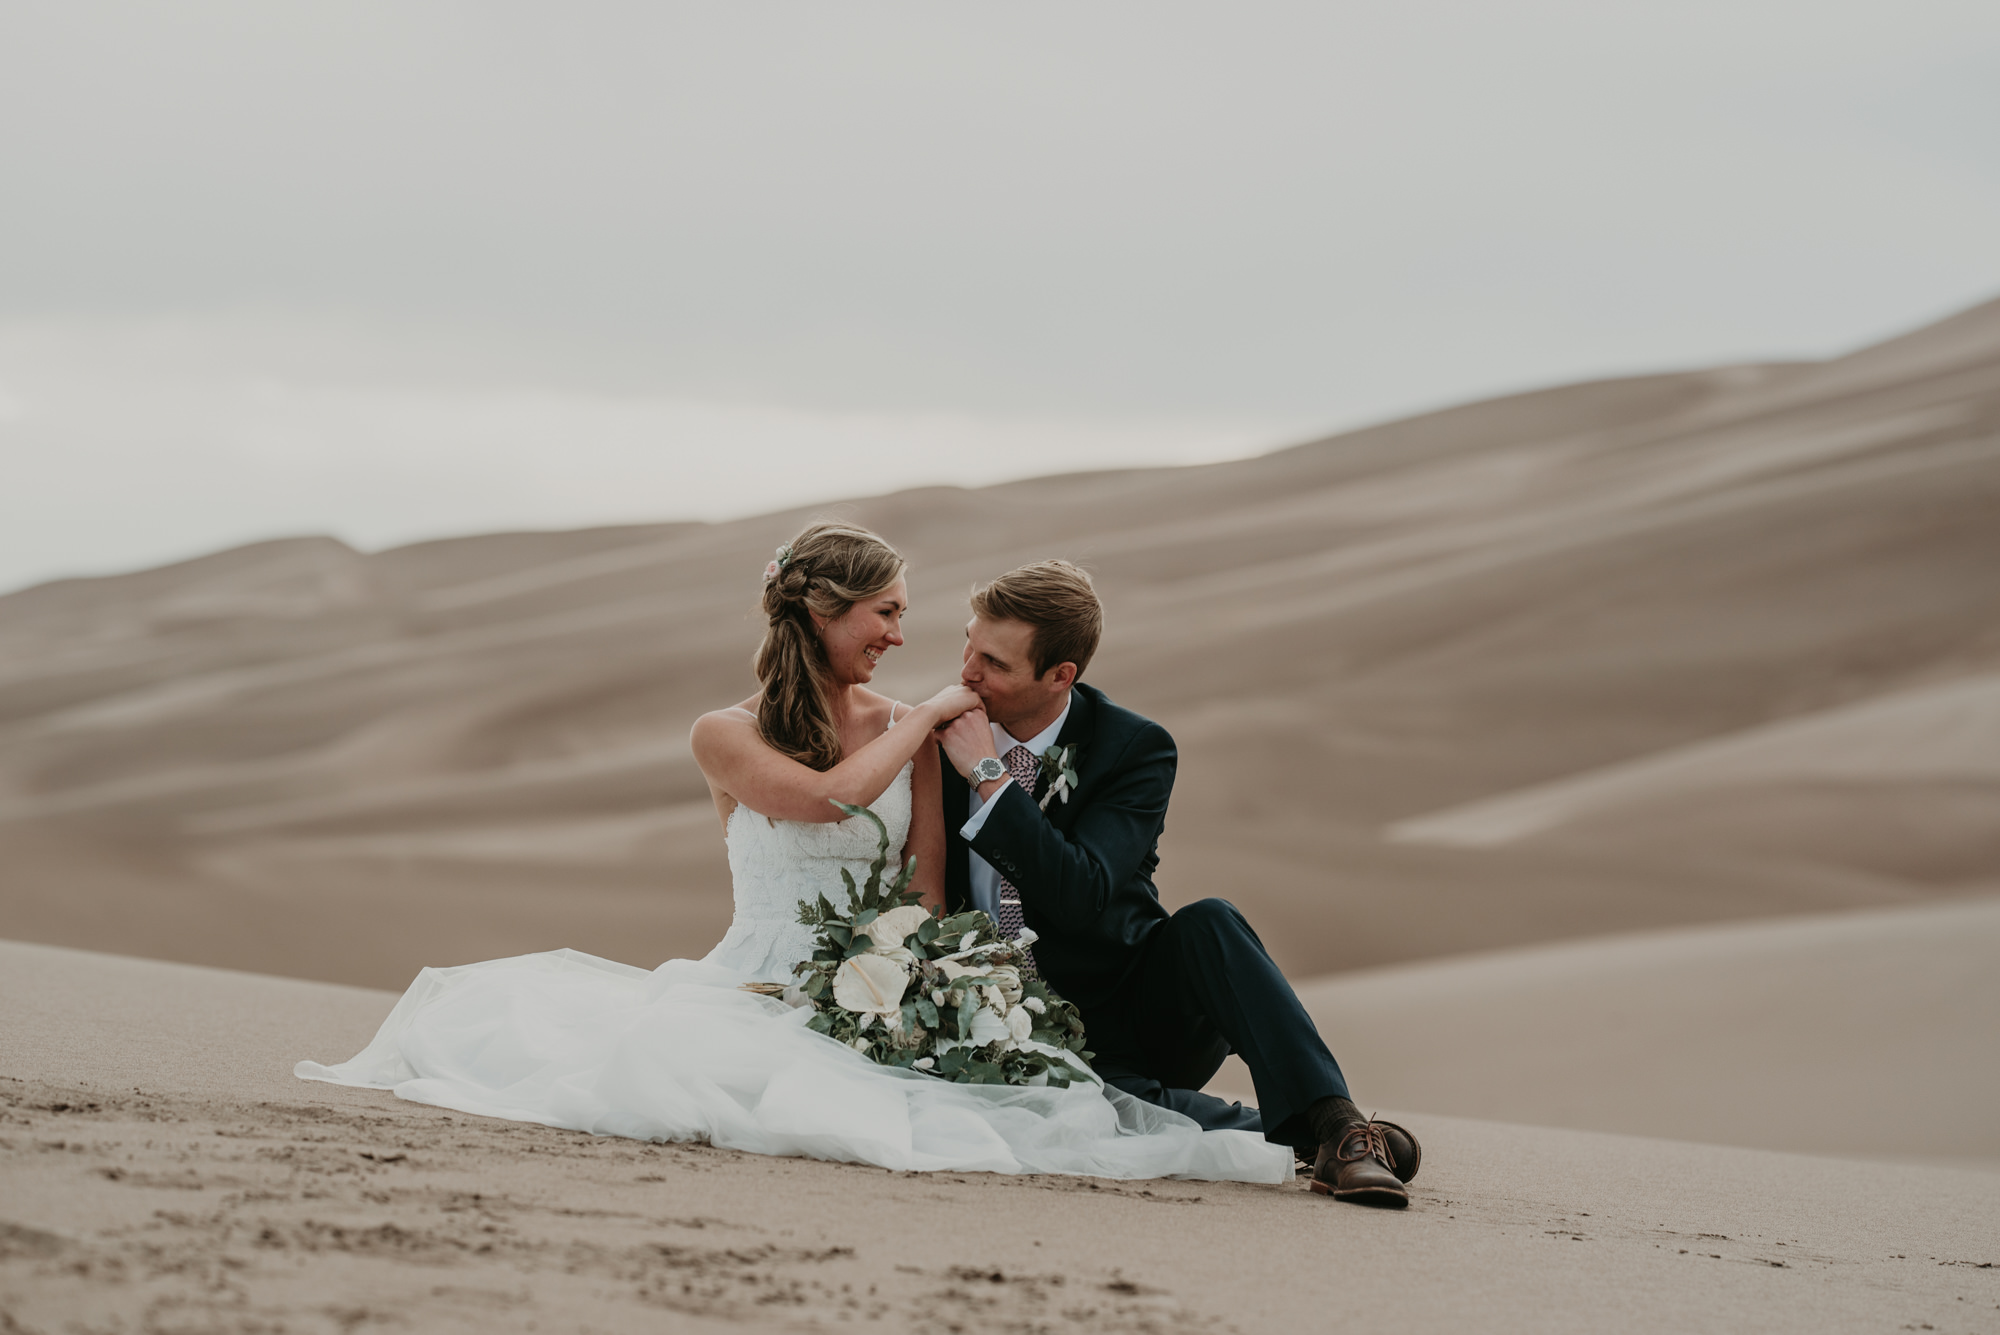 A sweet moment on the sand dunes.